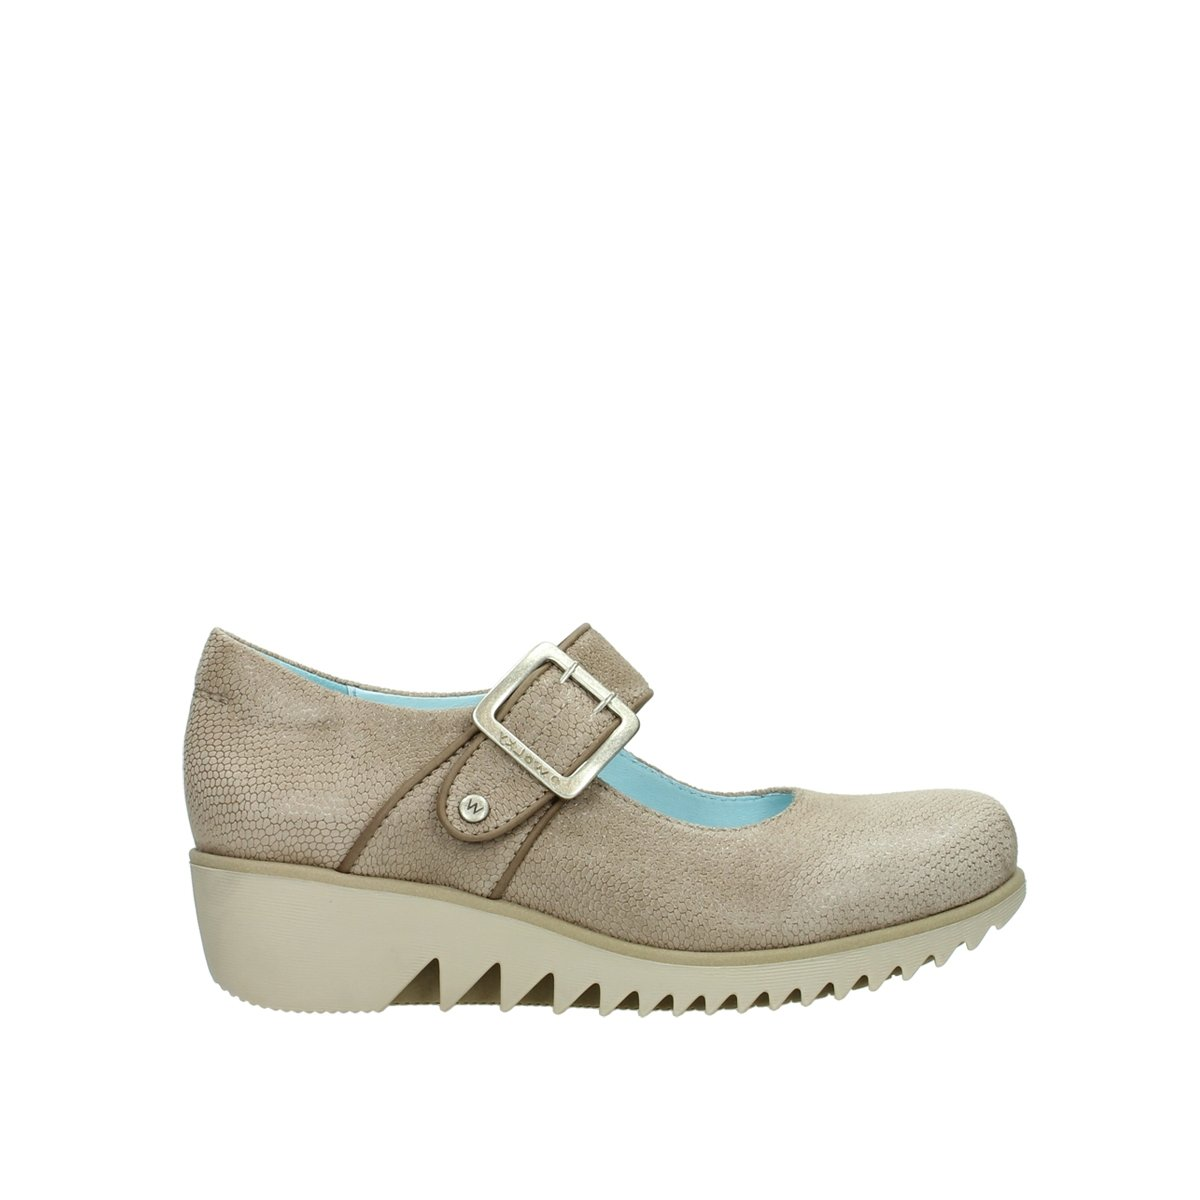 Wolky Comfort Mary Janes Silky B079M6R3MJ 42 M EU|20150 Taupe Leather